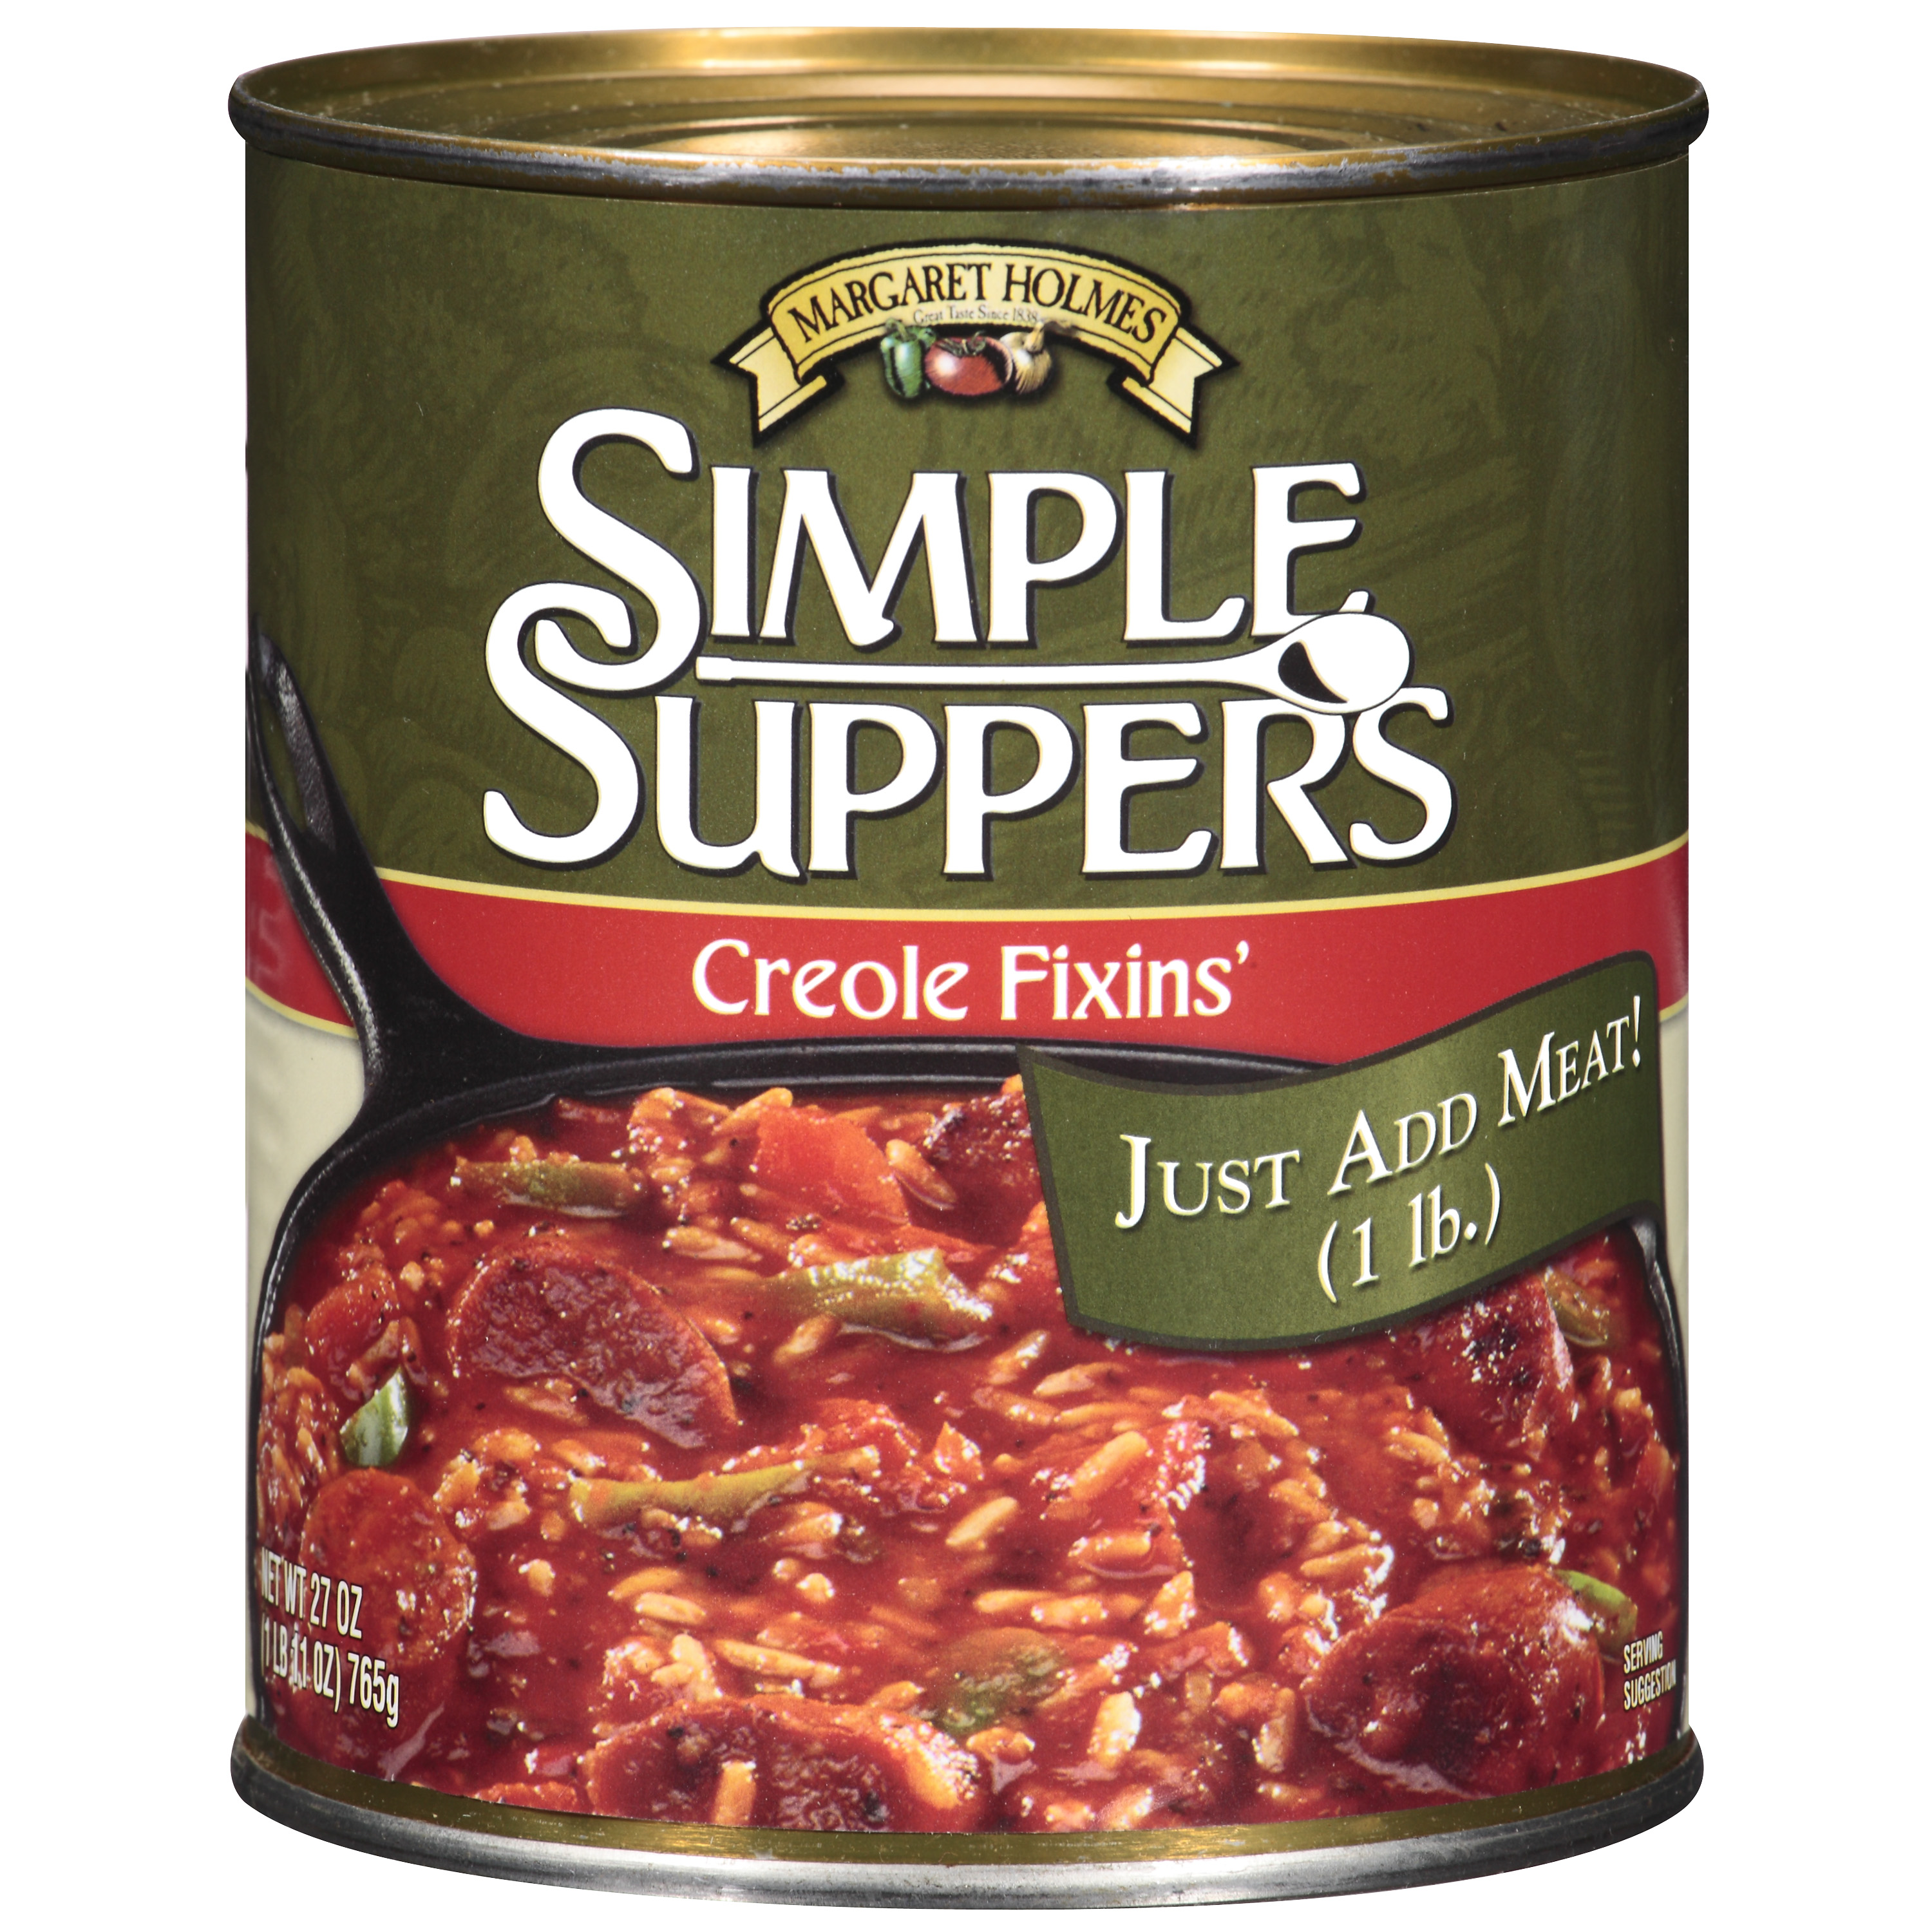 Margaret Holmes Simple Suppers Creole Fixins', 27 oz